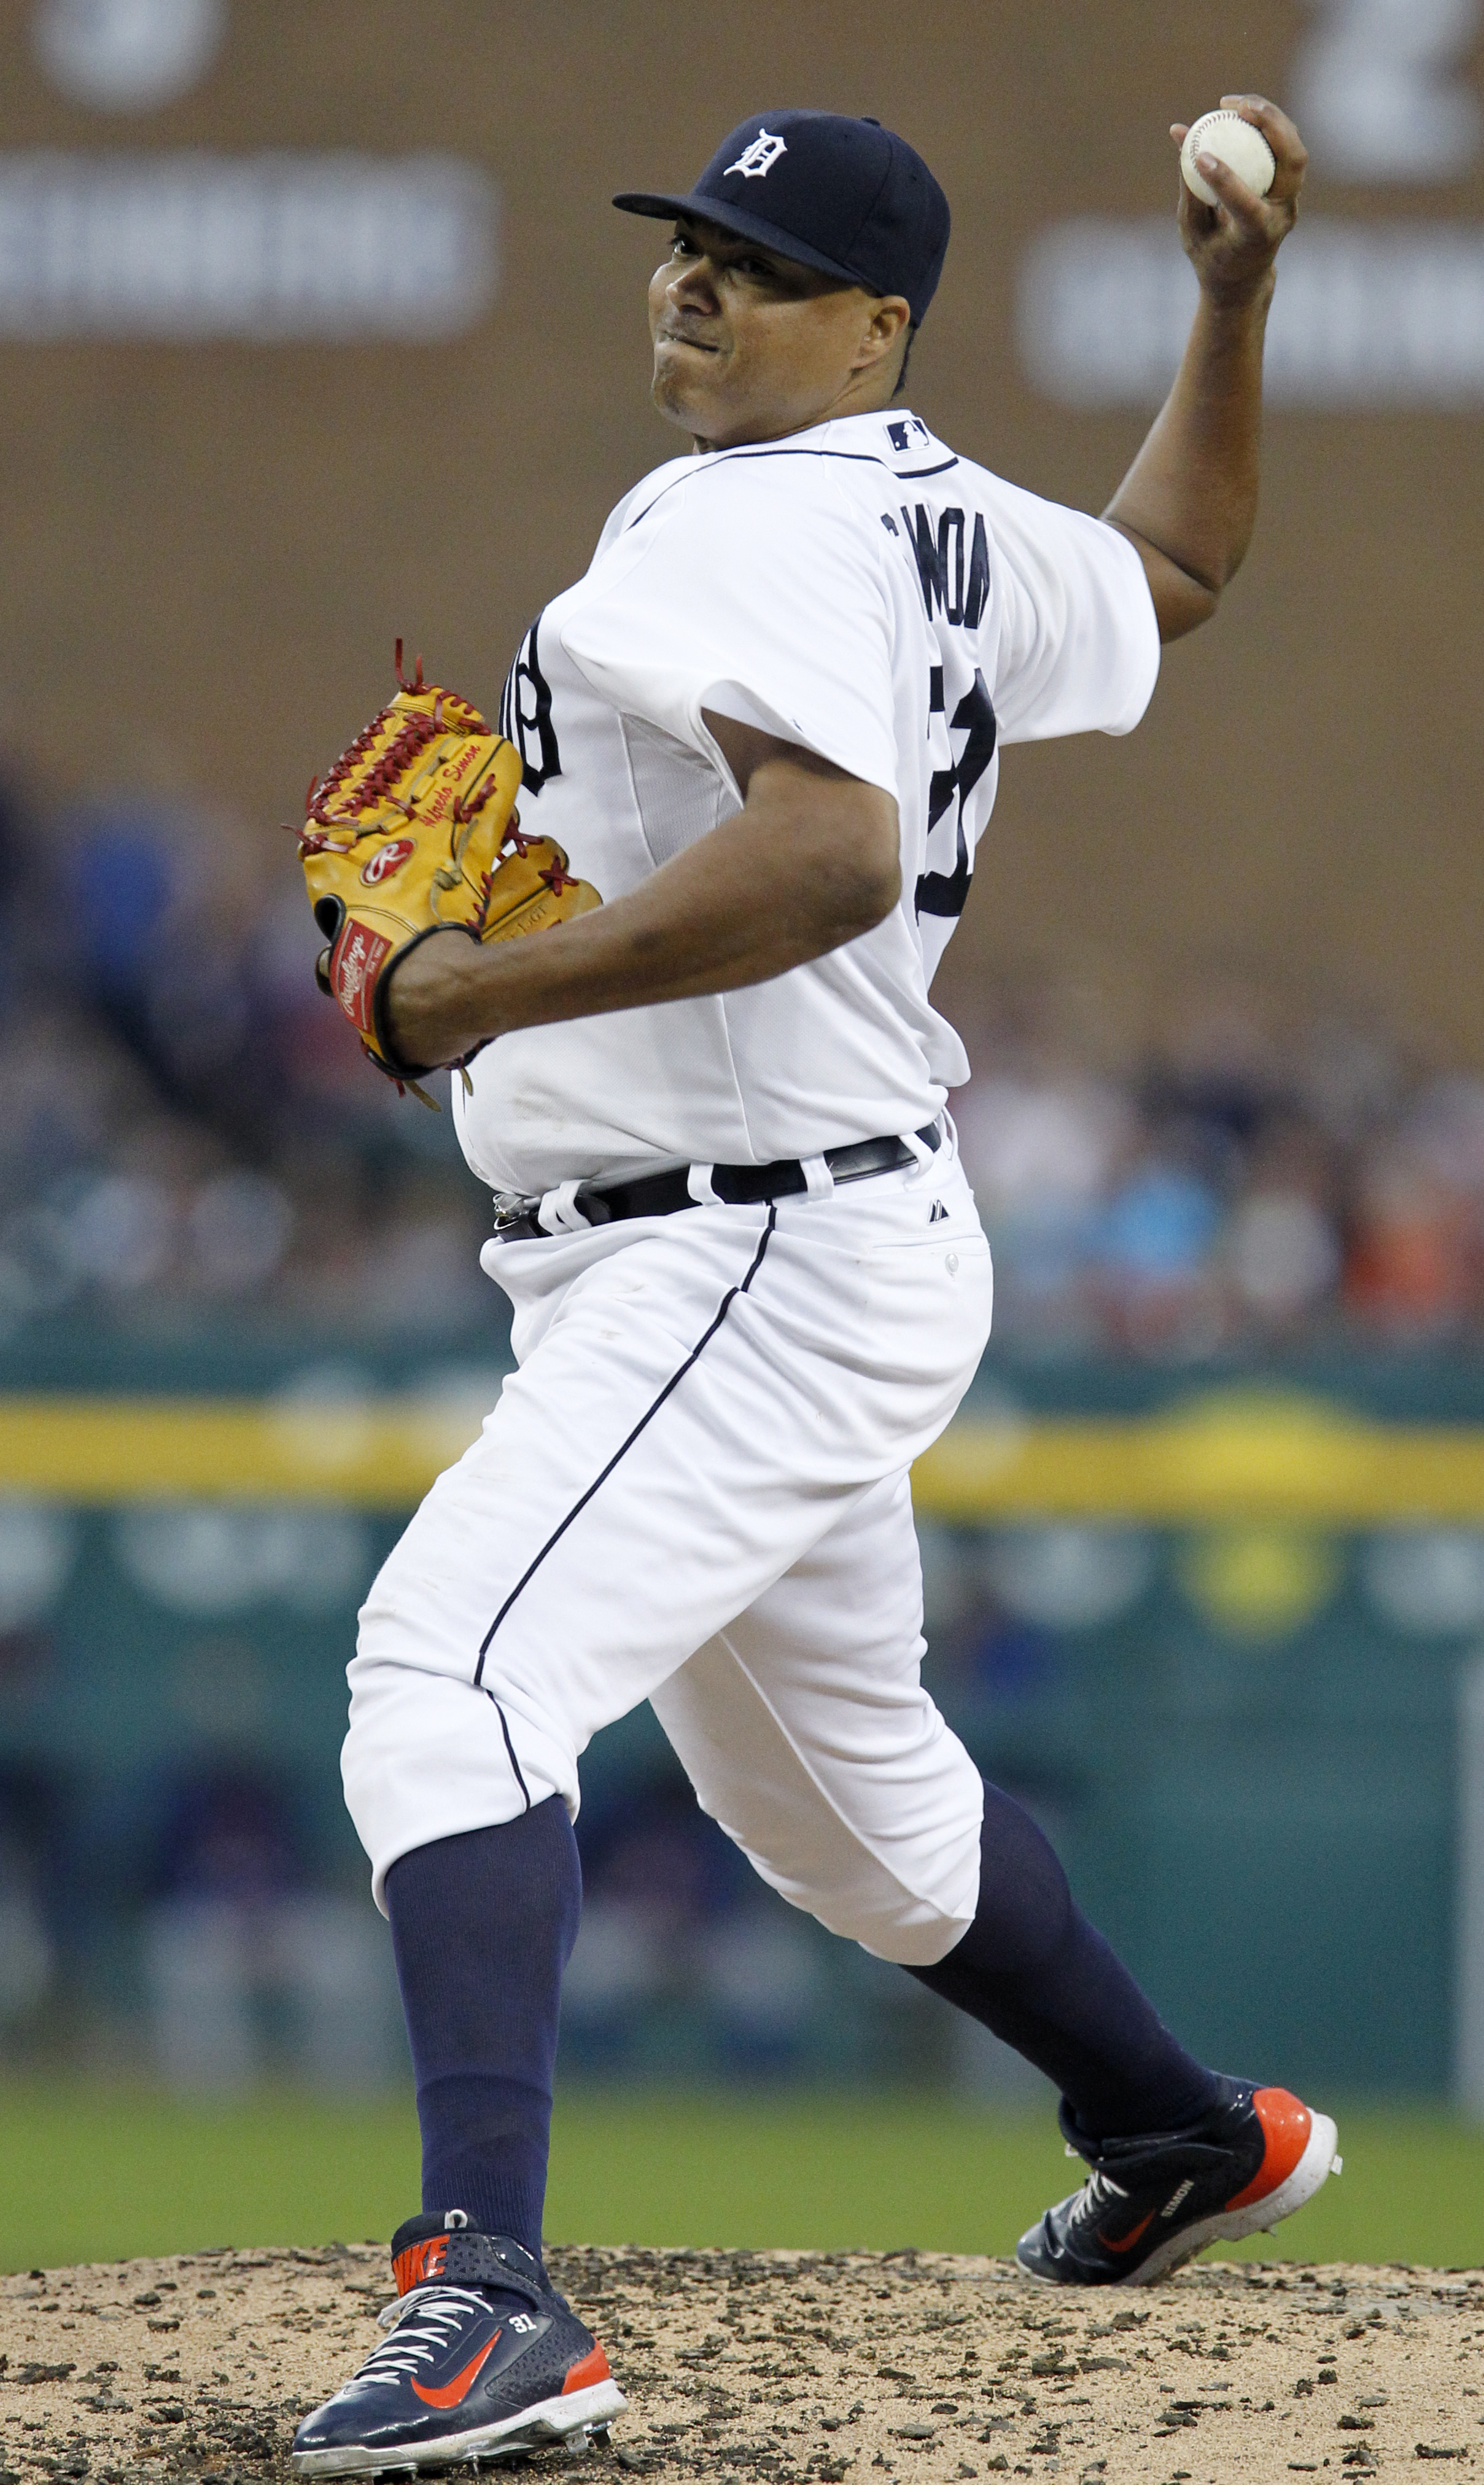 Detroit Tigers pitcher Alfredo Simon delivers against the Texas Rangers during the second inning of a baseball game at Comerica Park, Thursday, Aug. 20, 2015, in Detroit. (AP Photo/Duane Burleson)